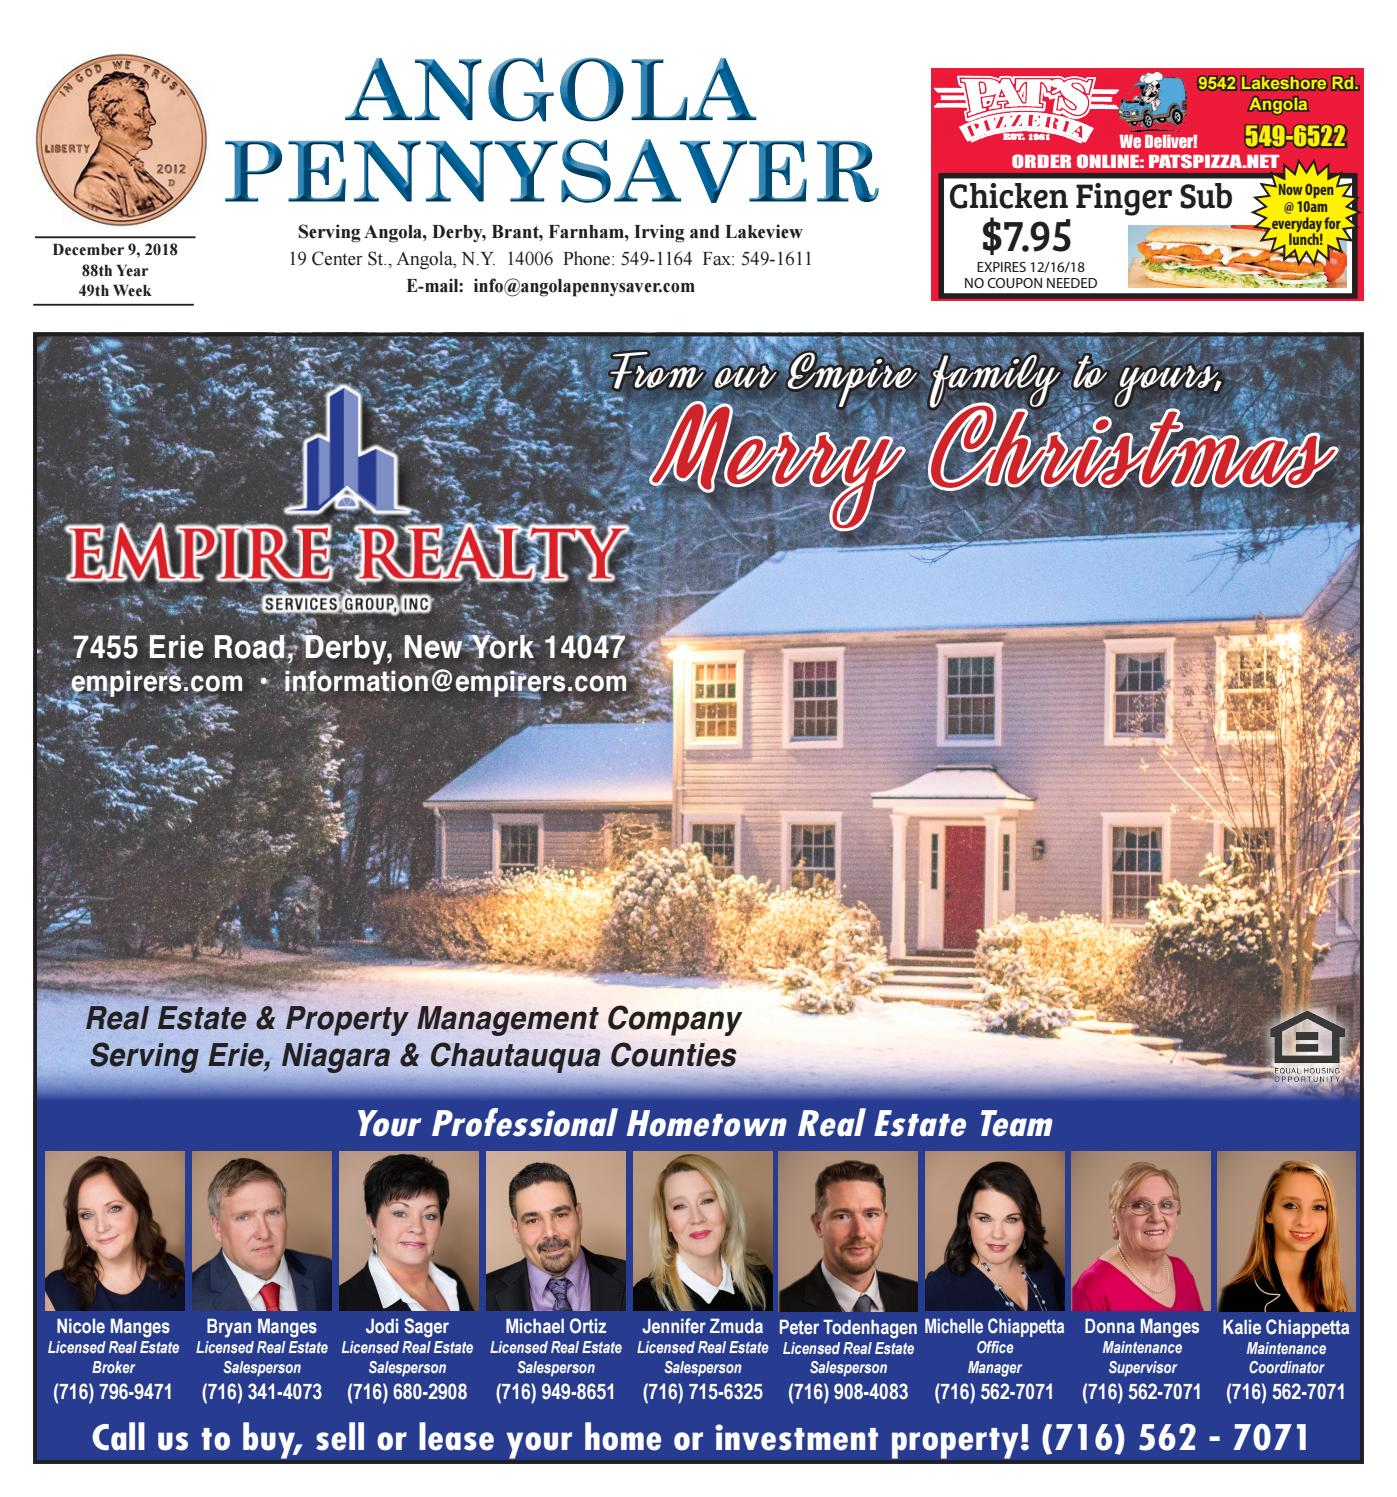 12 9 18 Angola Pennysaver By Issuu How To Turn Your Truck Into A Generator The Family Handyman